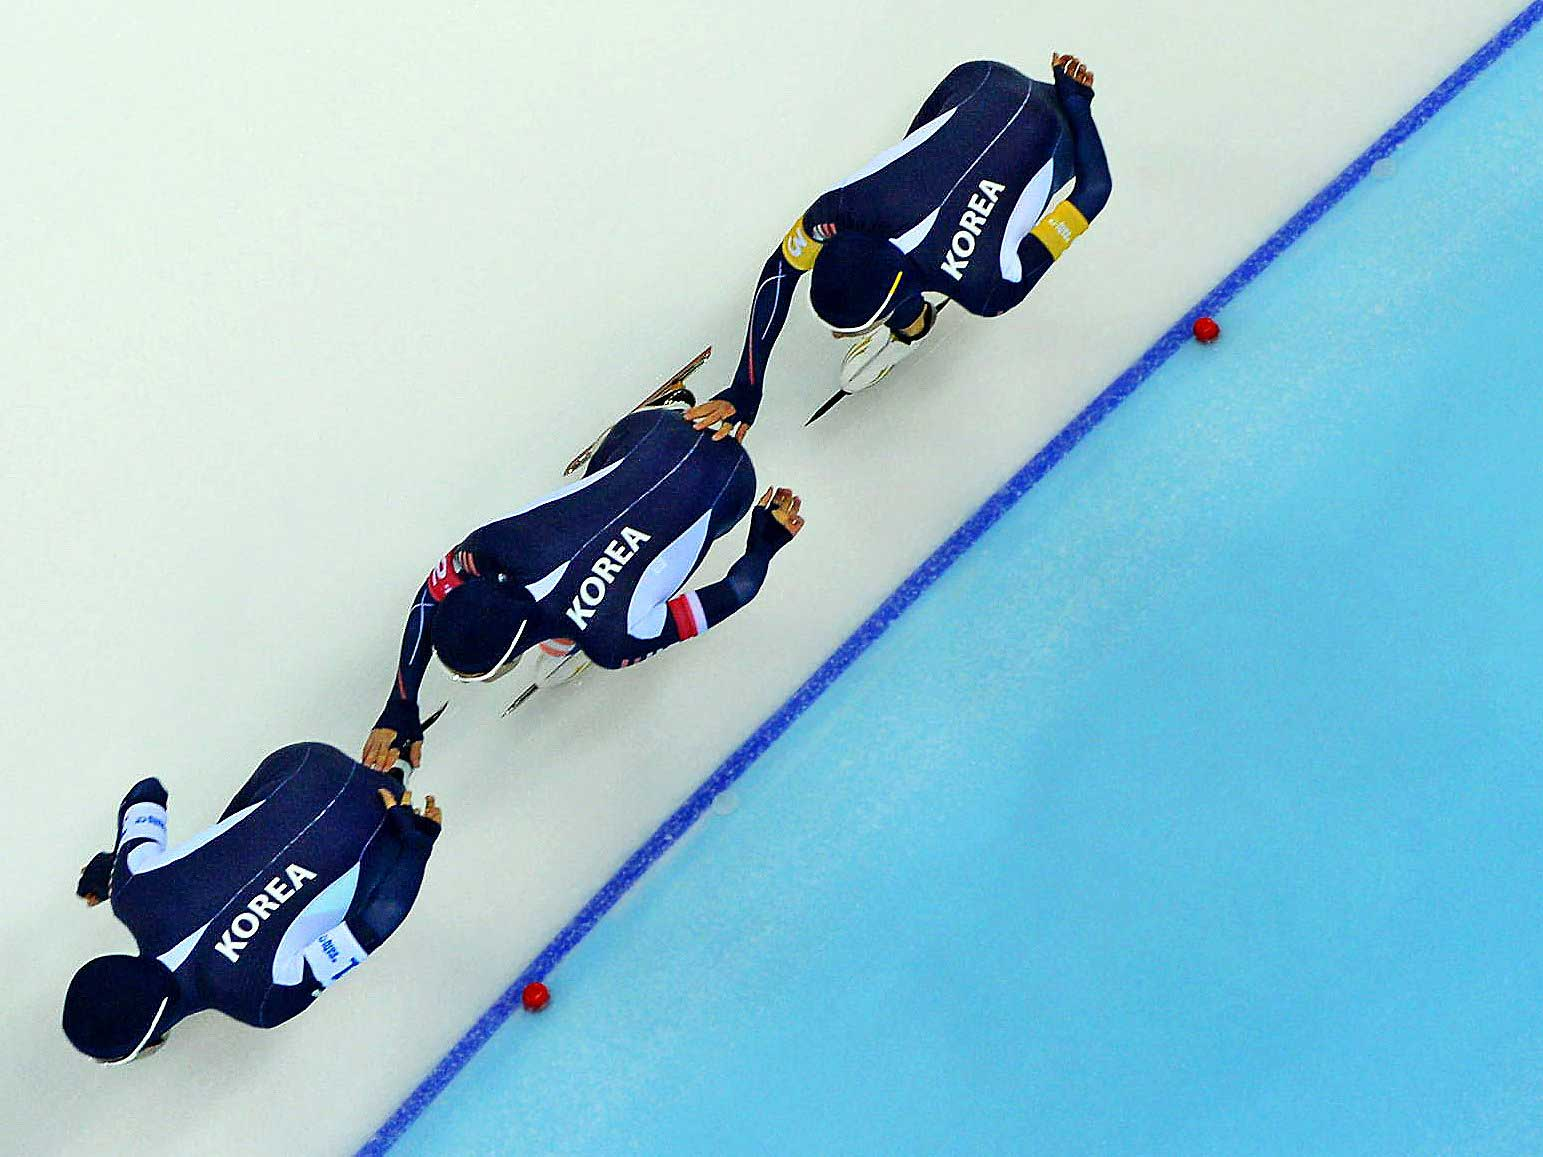 Members of Korea's team pursuit squad at the Sochi 2014 Winter Olympic Games.